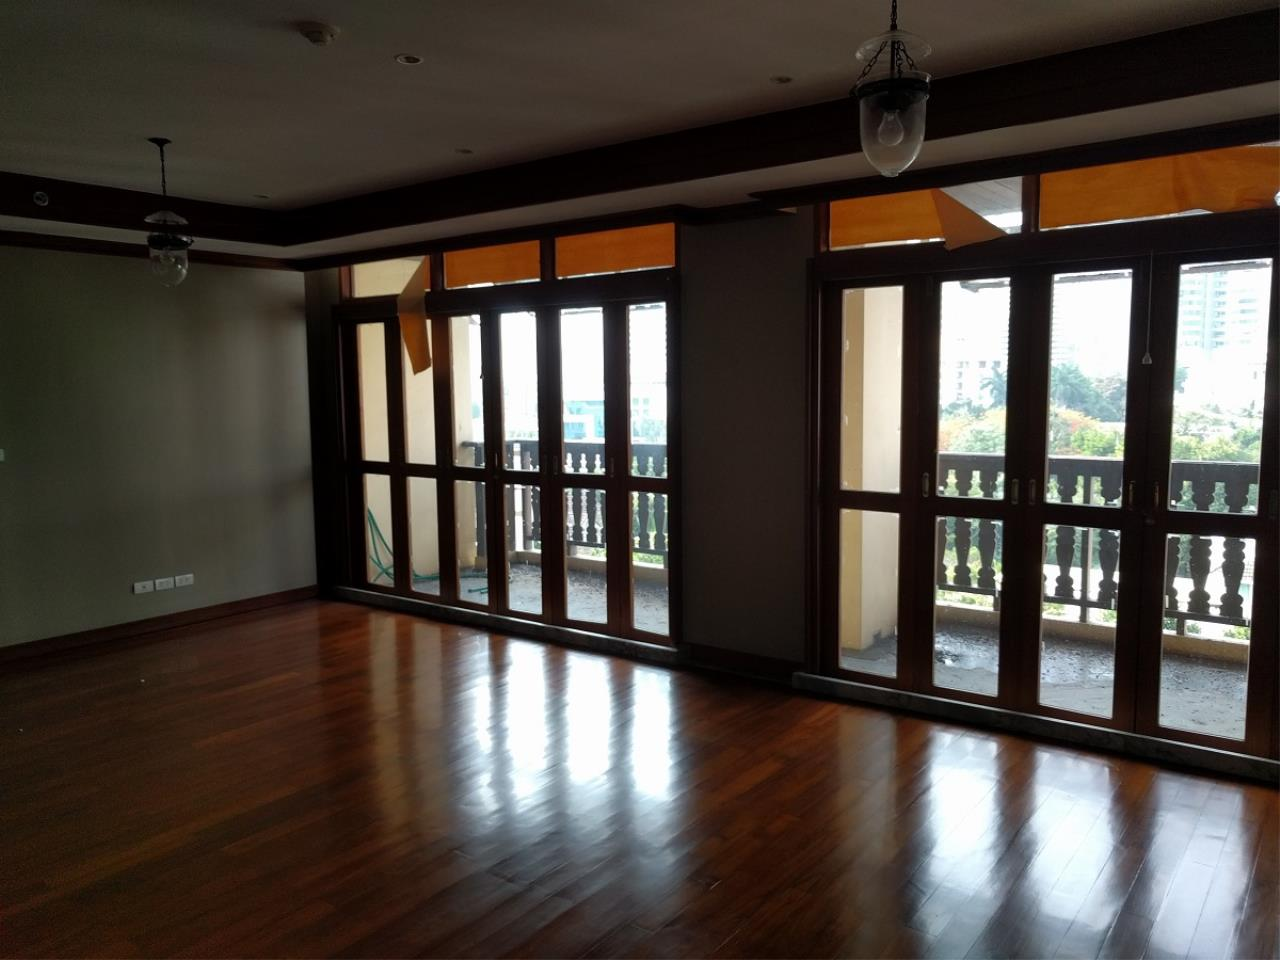 RE/MAX CondoDee Agency's Thai Elegance Luxury Condominium - Entire Building for Sale 7